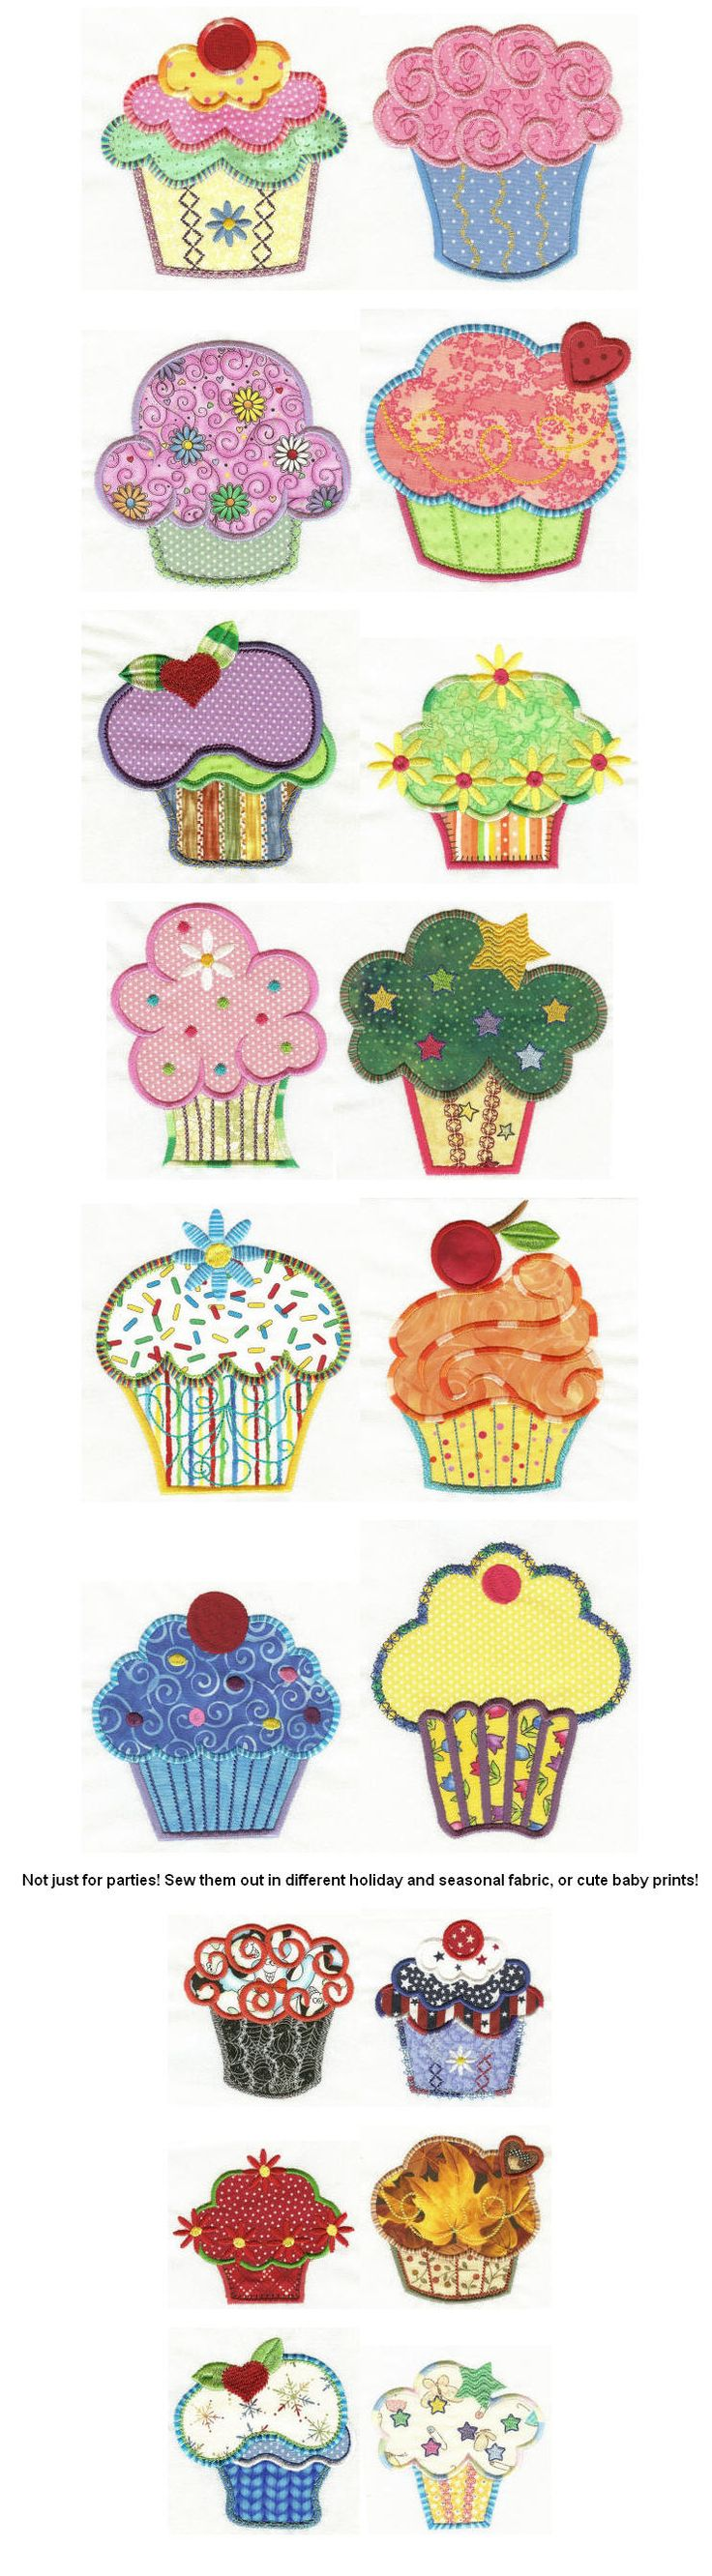 Cute cupcake applique